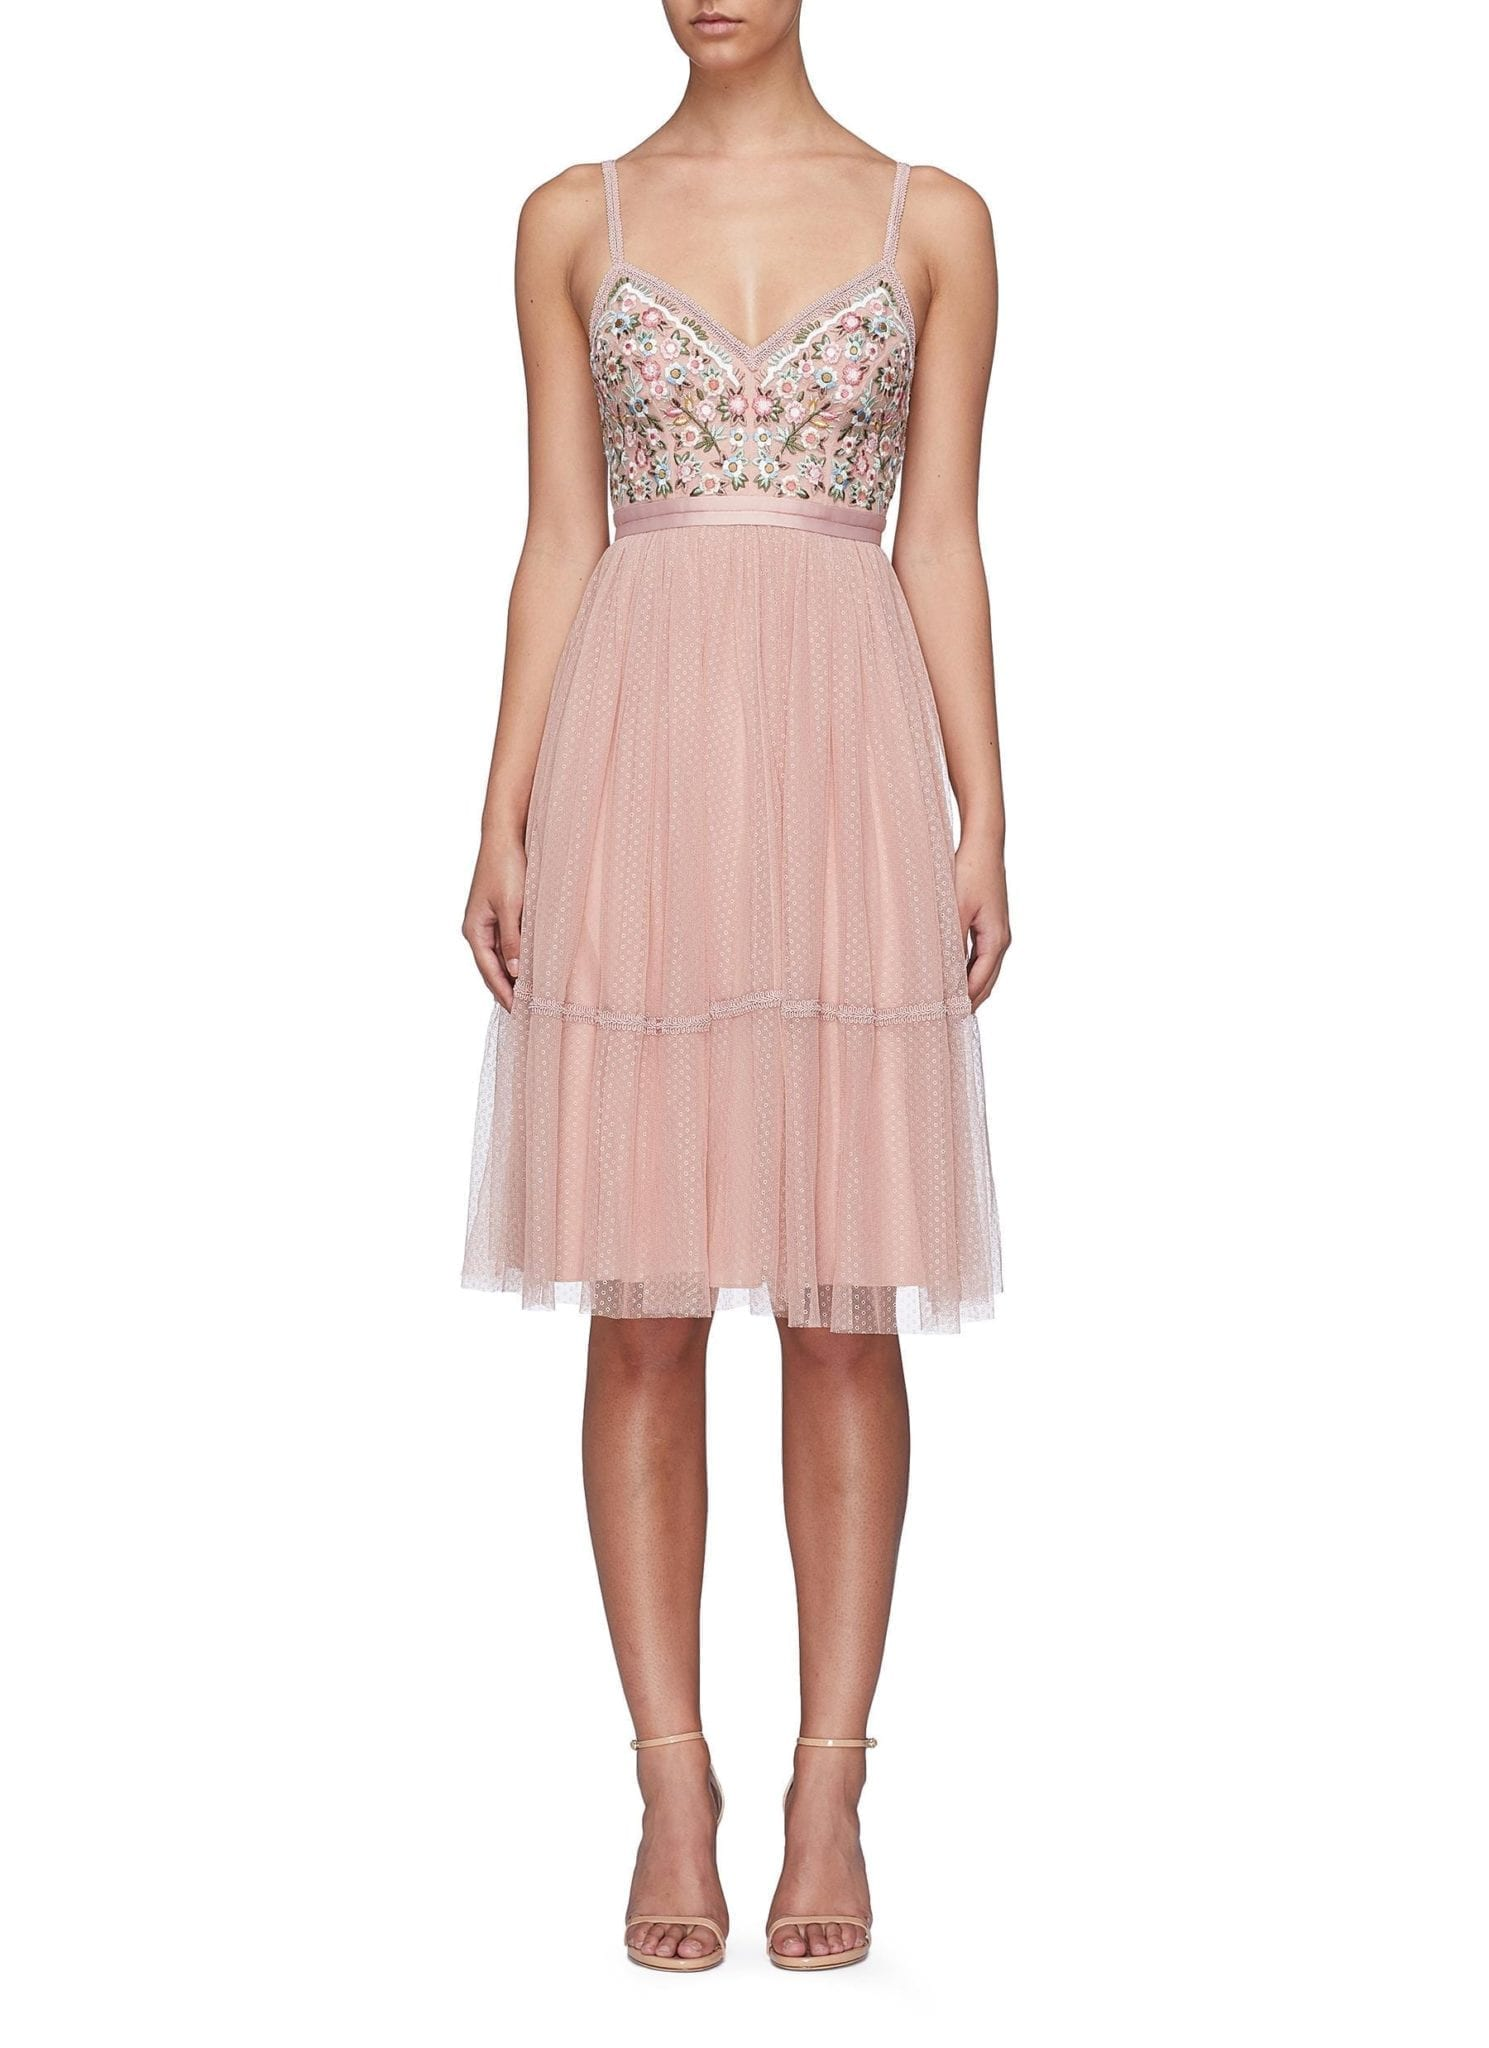 NEEDLE & THREAD 'Whimsical' Floral Embroidered Tulle Pink Dress